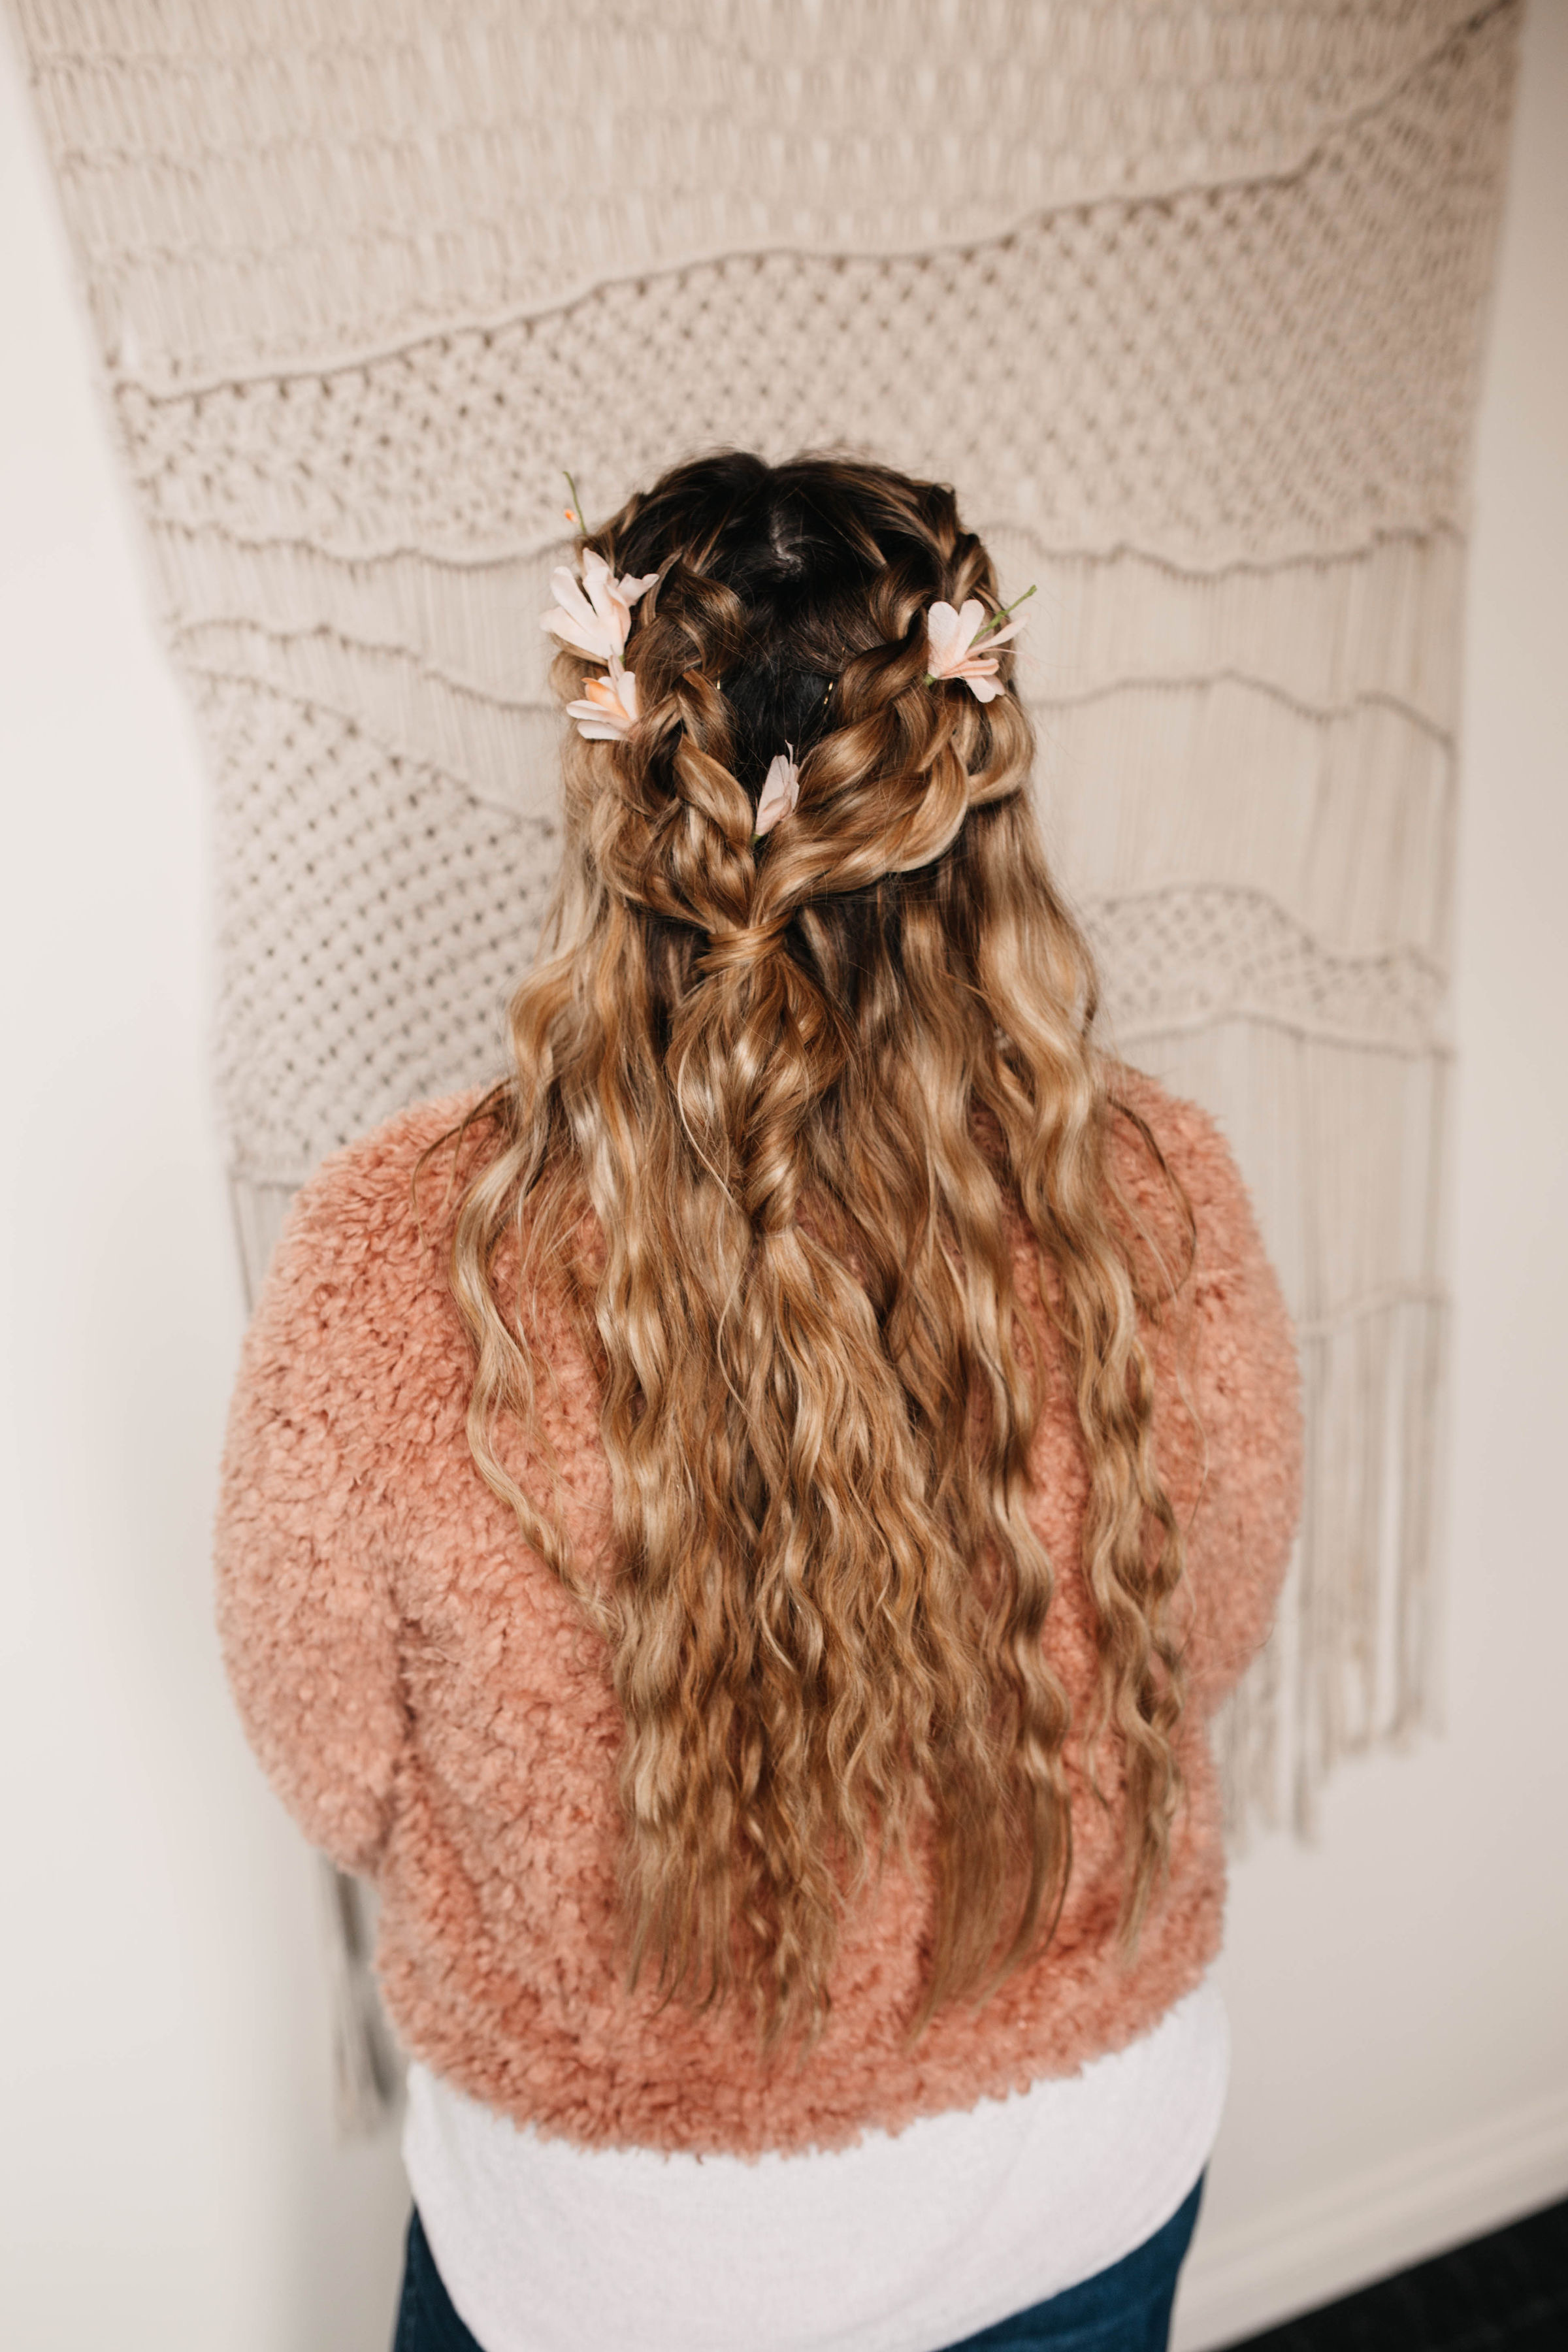 Hand-Tied vs. Traditional Extensions - As you can imagine, hand-tied extensions are a lot more work compared to other types. Because each small bit needs to be tied into your hair by hand, this process often takes a bit longer than tape or other types of bead extensions. However,  JC Hairologist specializes in hand-tied extensions, and makes sure that the salon experience is second-to-none. Because the track is made with just your hair and the beads on the extension, you'll feel 50% less tension than other types of extensions, and it's way less invasive too!Please get in contact if you have any questions about what the hand-tied extension process is like, and if you're interested, schedule your appointment today to get your hand-tied extensions in Salem, OR!